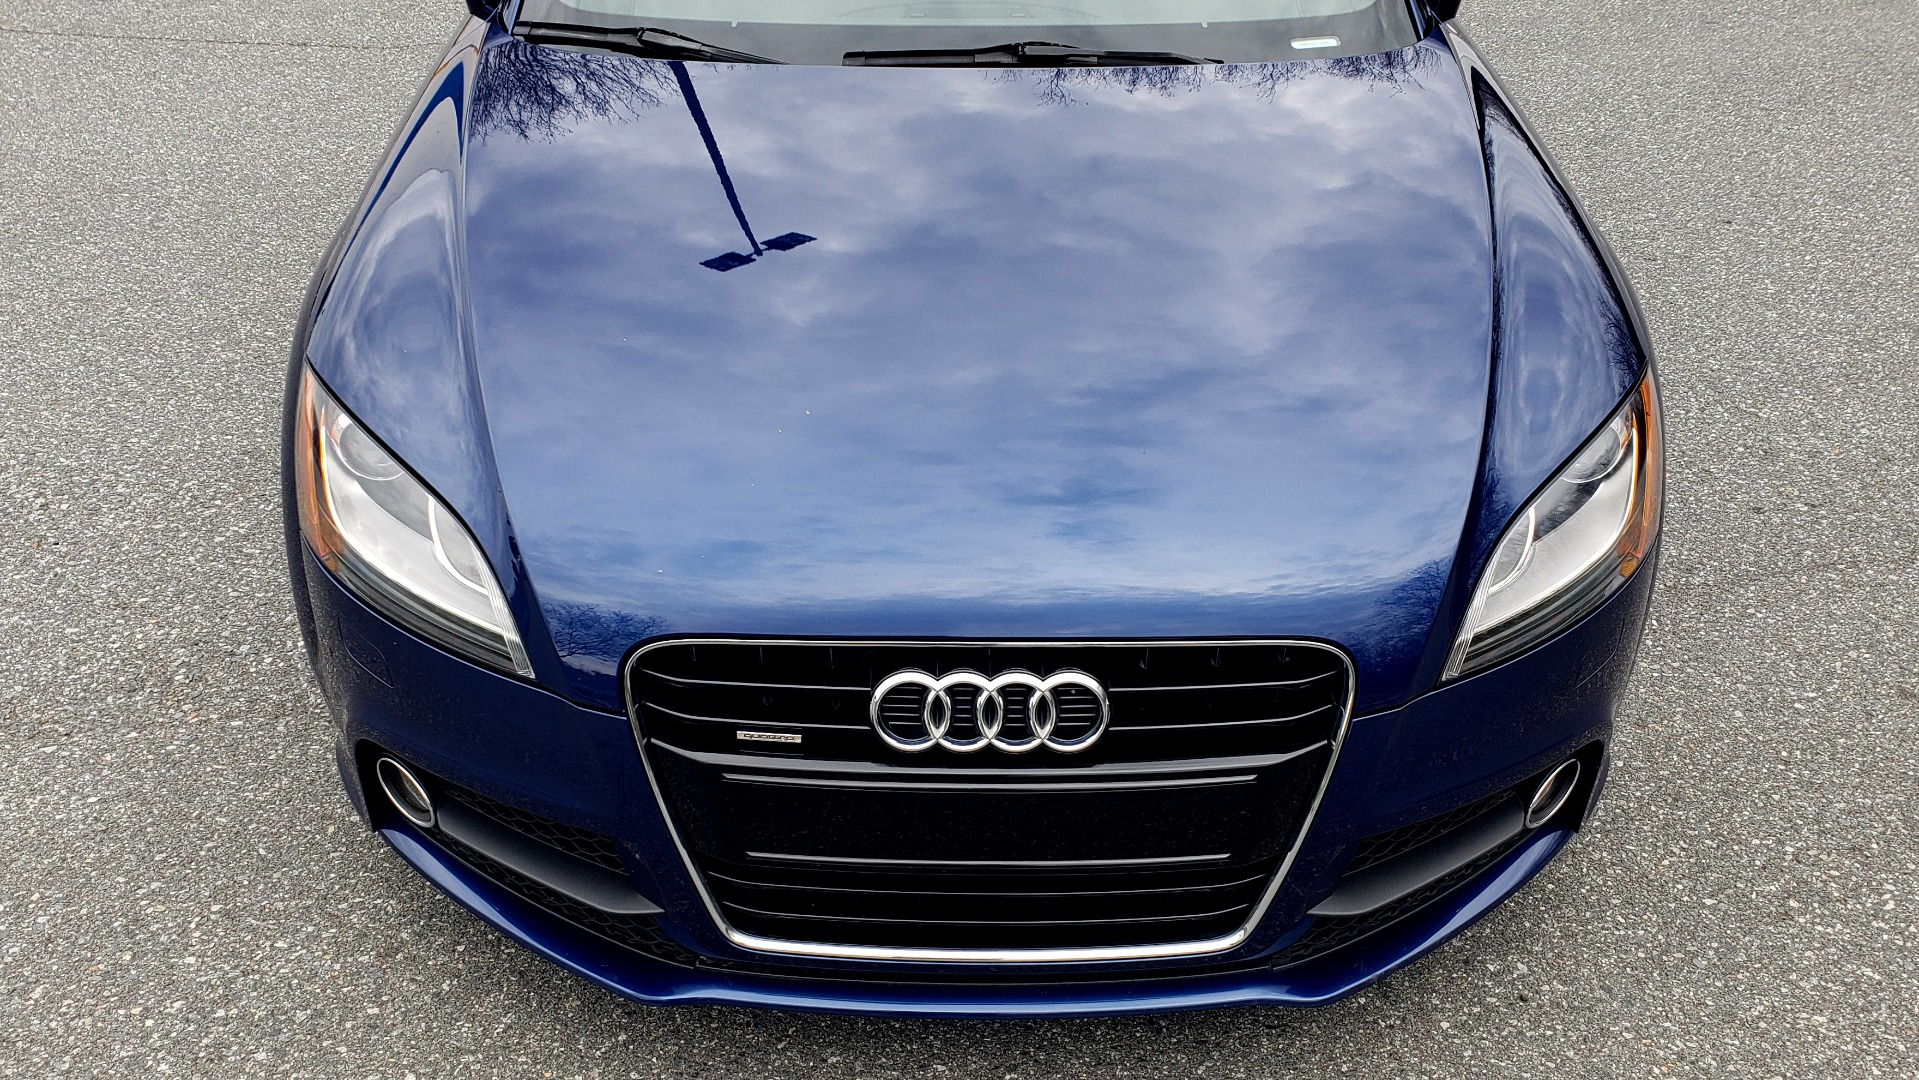 Used 2014 Audi TT 2.0T S-TRONIC / COUPE / AWD / LEATHER / HEATED SEATS for sale Sold at Formula Imports in Charlotte NC 28227 17